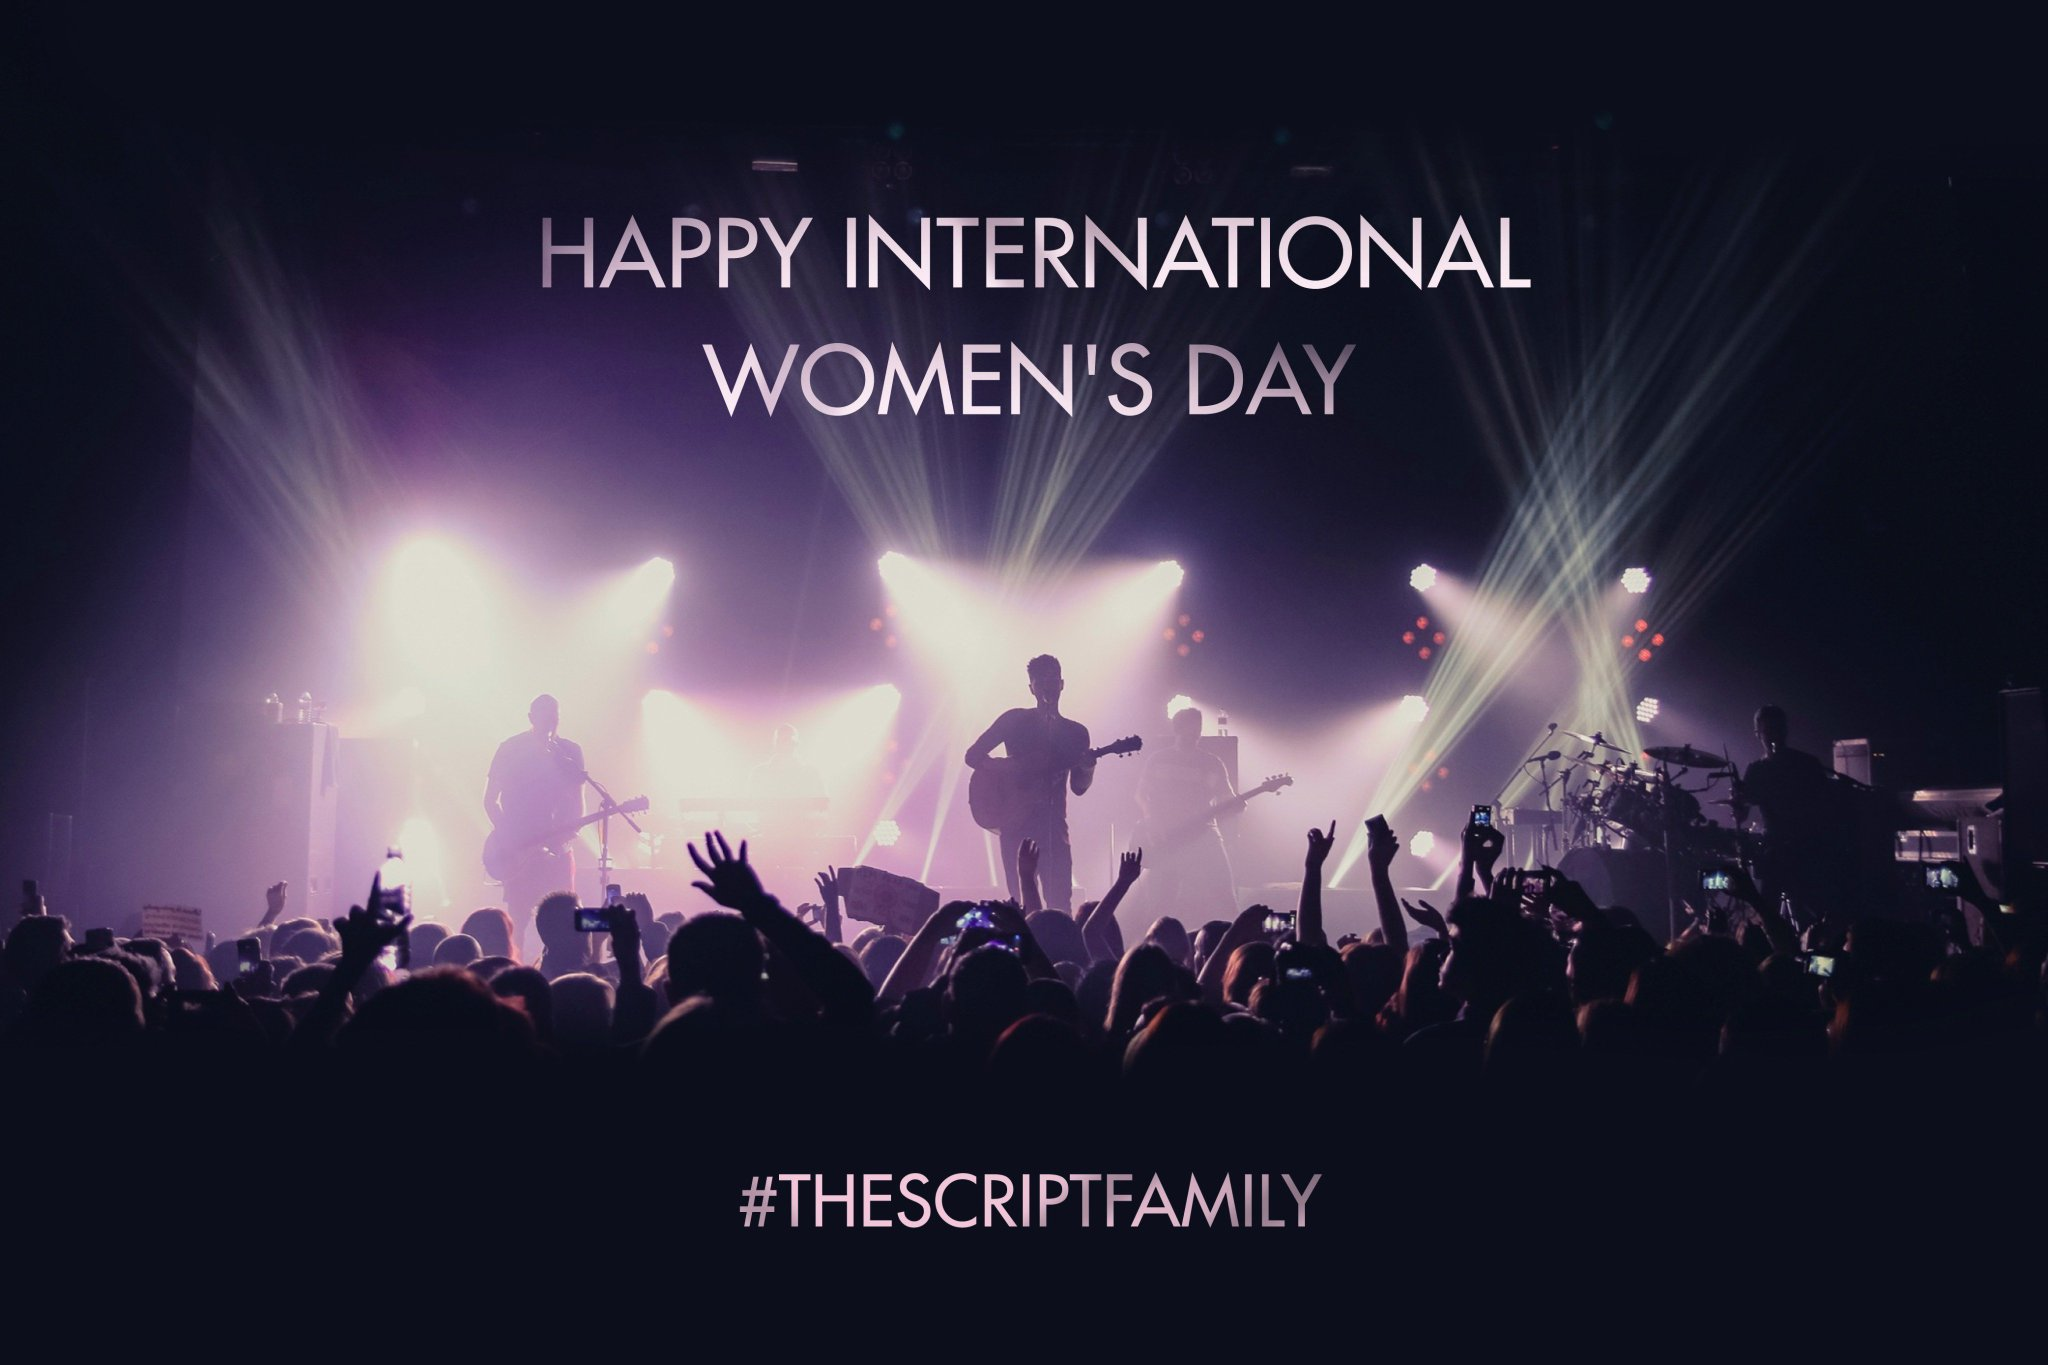 Happy #InternationalWomensDay #TheScriptFamily ! https://t.co/Vm7hCxCwiK